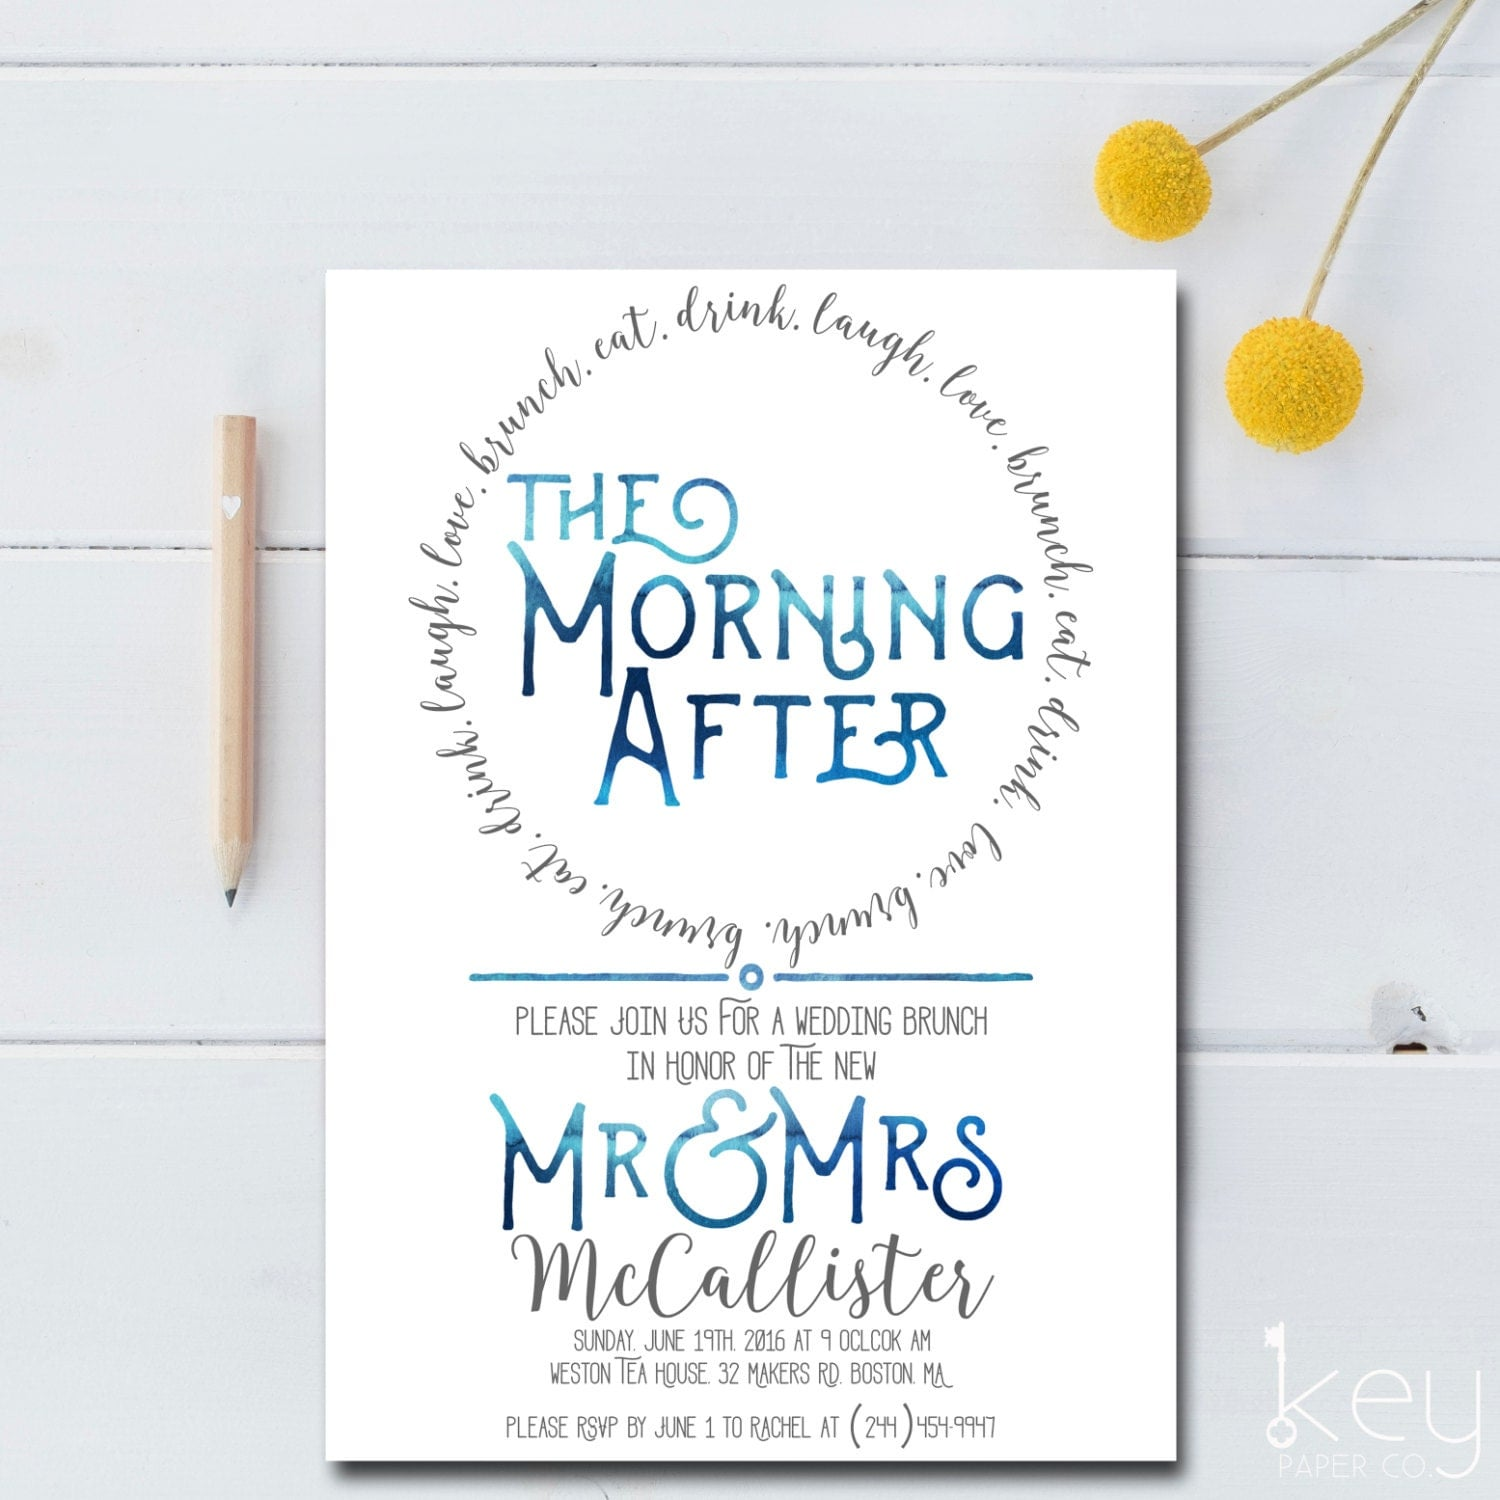 Post wedding brunch invitation printable the morning after for Wedding brunch invitations